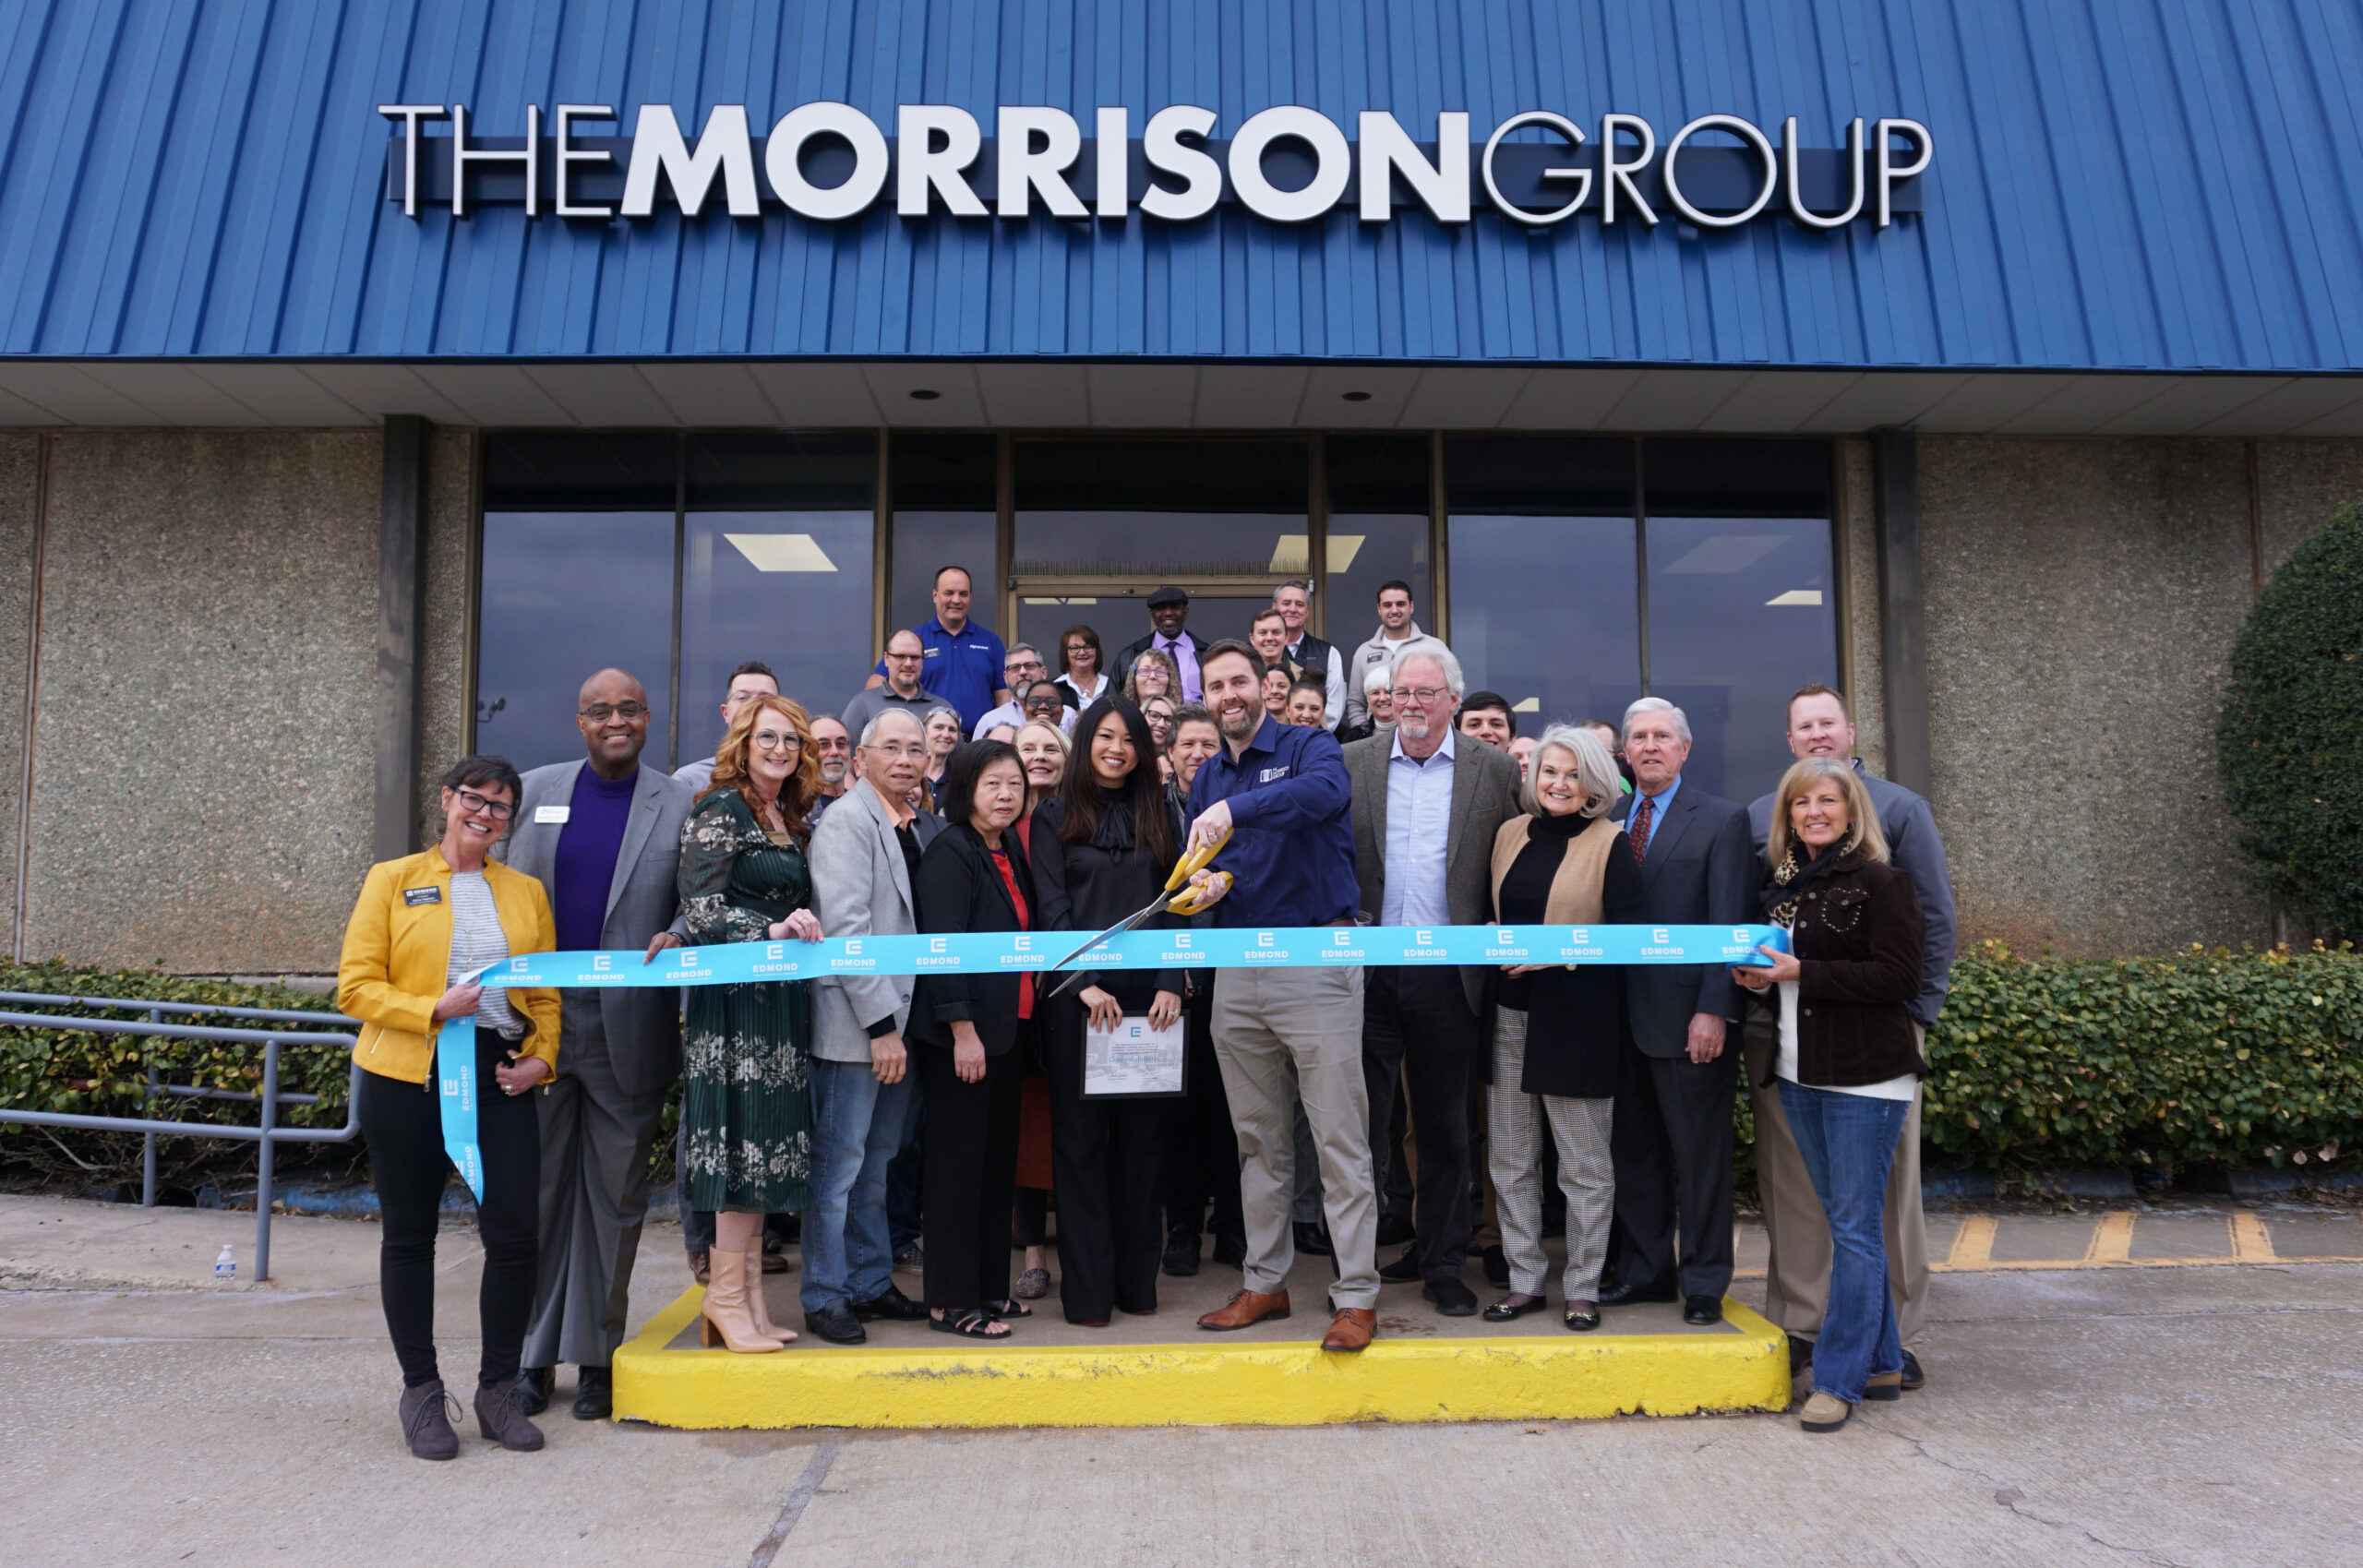 The_Morrison_Group